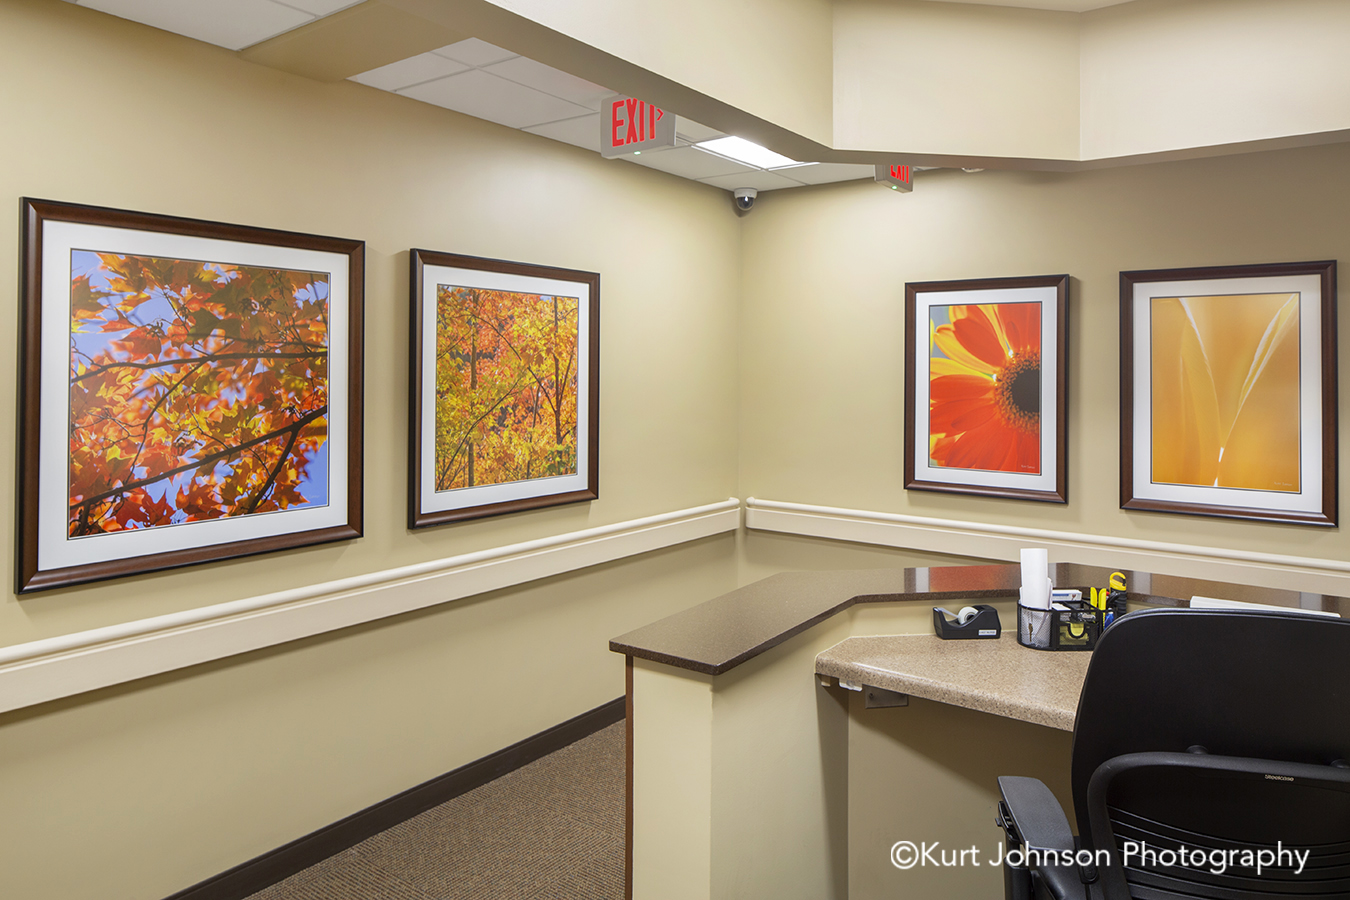 leaves flowers botanical framed art pender medical clinic nebraska brown wood frame white mattes install healthcare hospital installation